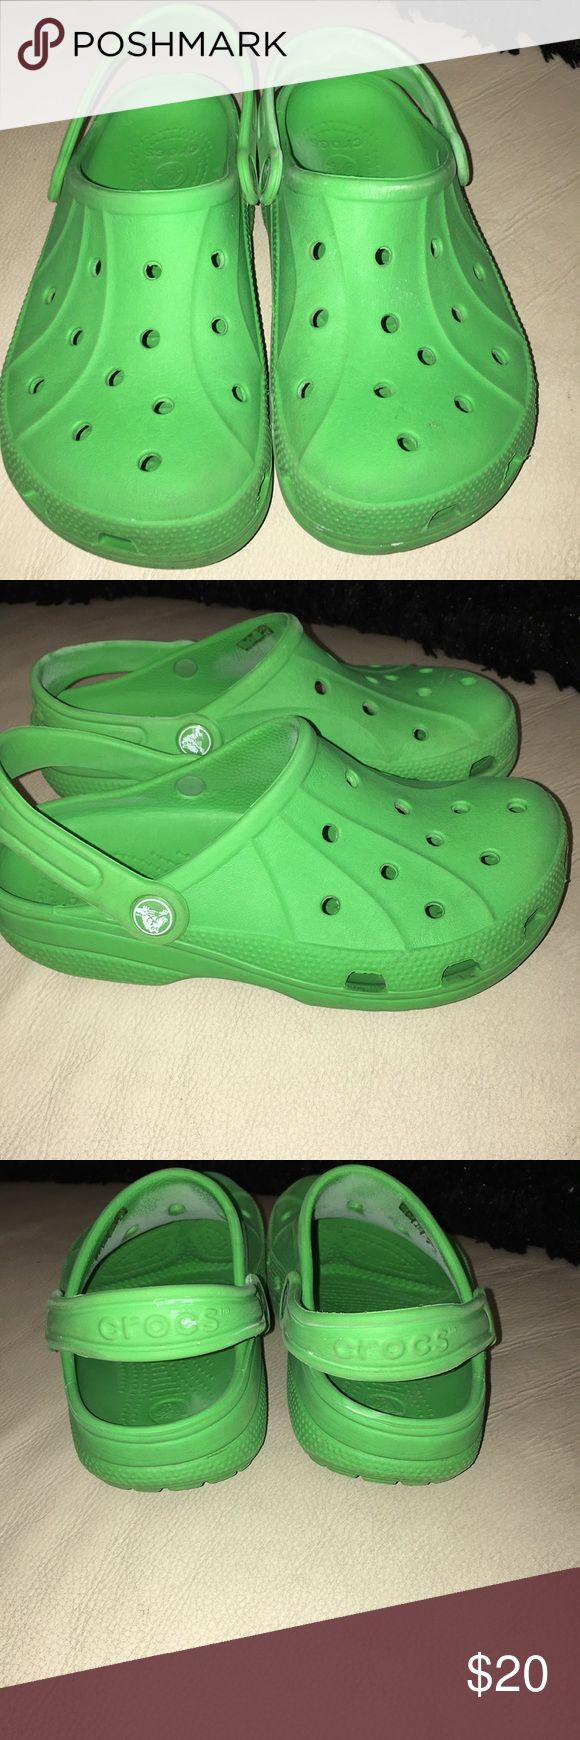 Kids Green Size 3 Crocs Pre-Owned Size 3 Green CROCS Shoes Water Shoes